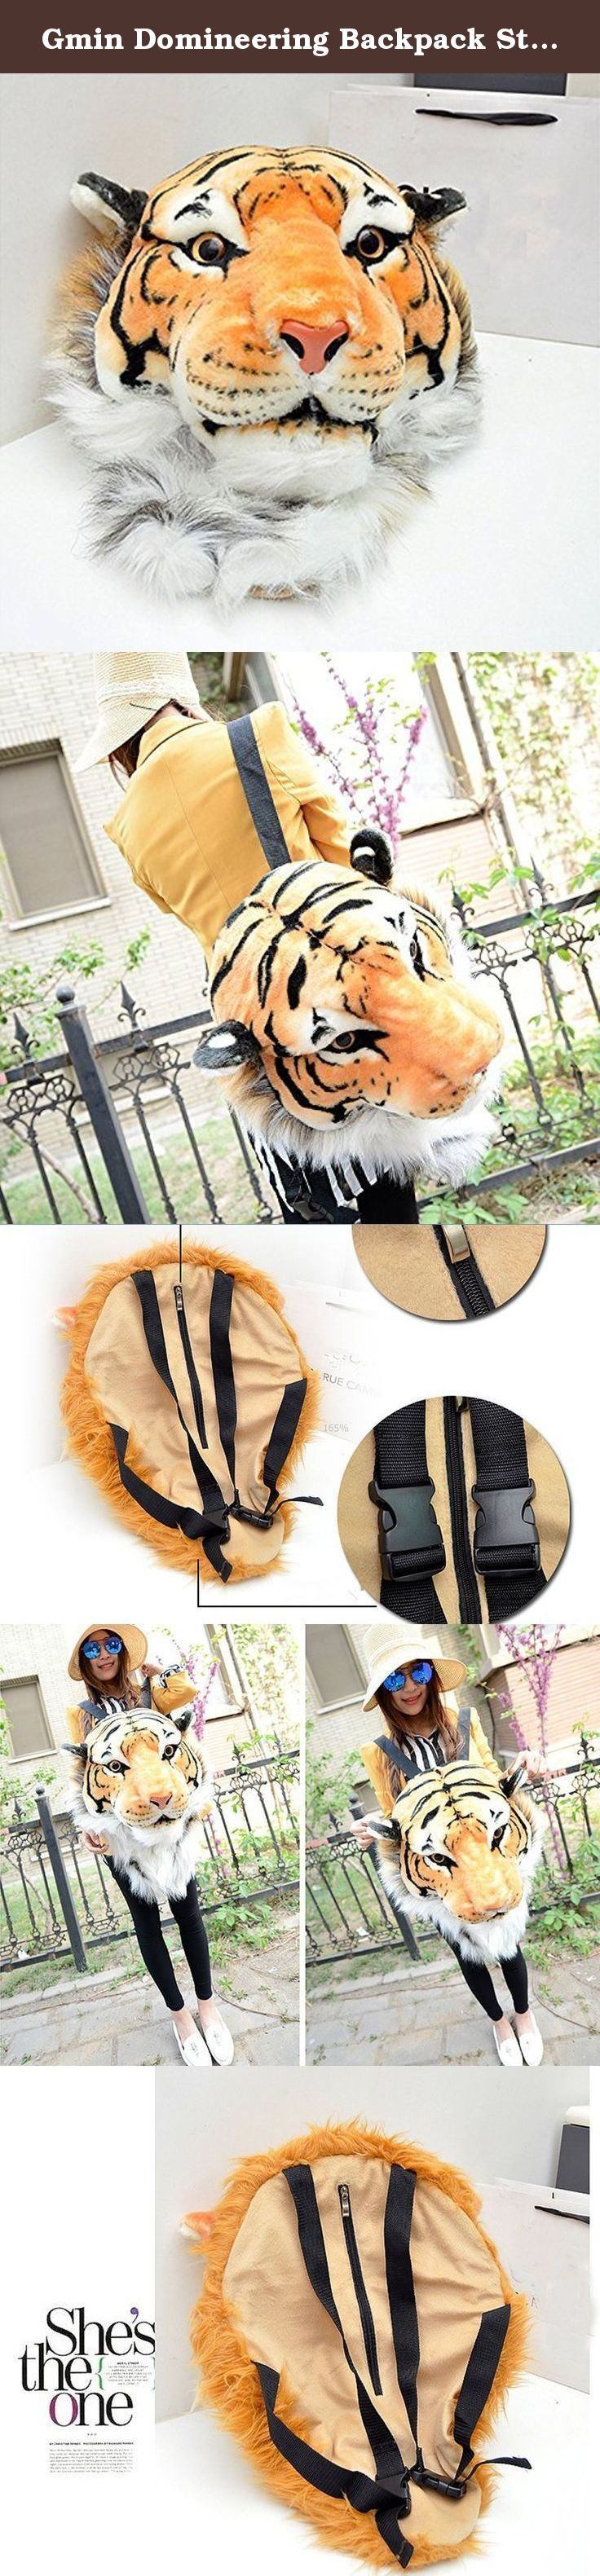 Gmin Domineering Backpack Stuffed Tiger Head 3D Simulation Personalised Shoulder Bag (Yellow / L). • Size: 60cm*40cm*30cm [L*W*H] • Weight: 0.6KG • Wool material is acrylic material inside the tiger skull model is a high-density foam styrofoam • Very cool and personalised design • High simulation, play cool and act fun!.